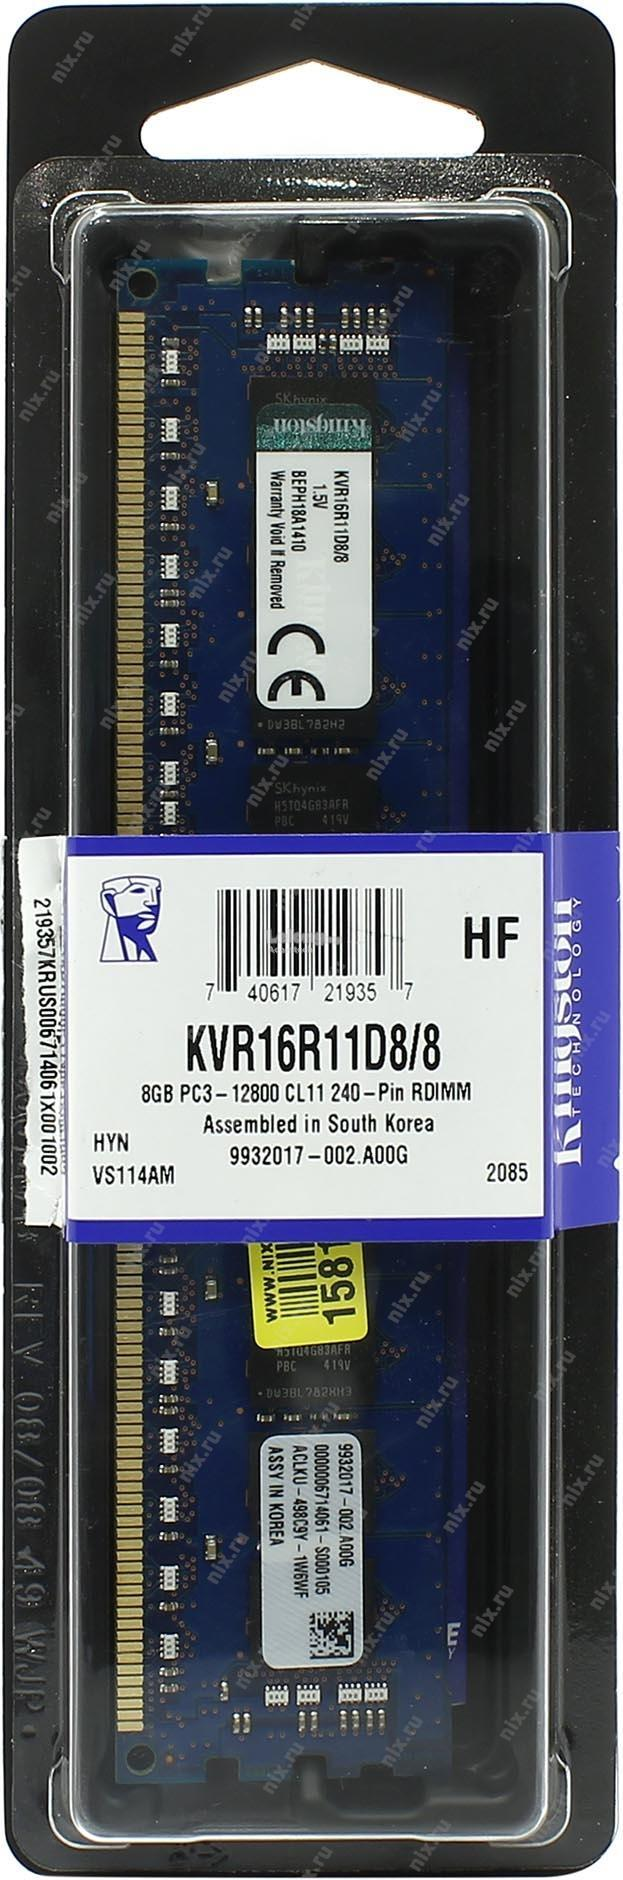 Kingston 8GB DDR3 1600Mhz CL11 ECC Registered Server KVR16R11D8/8